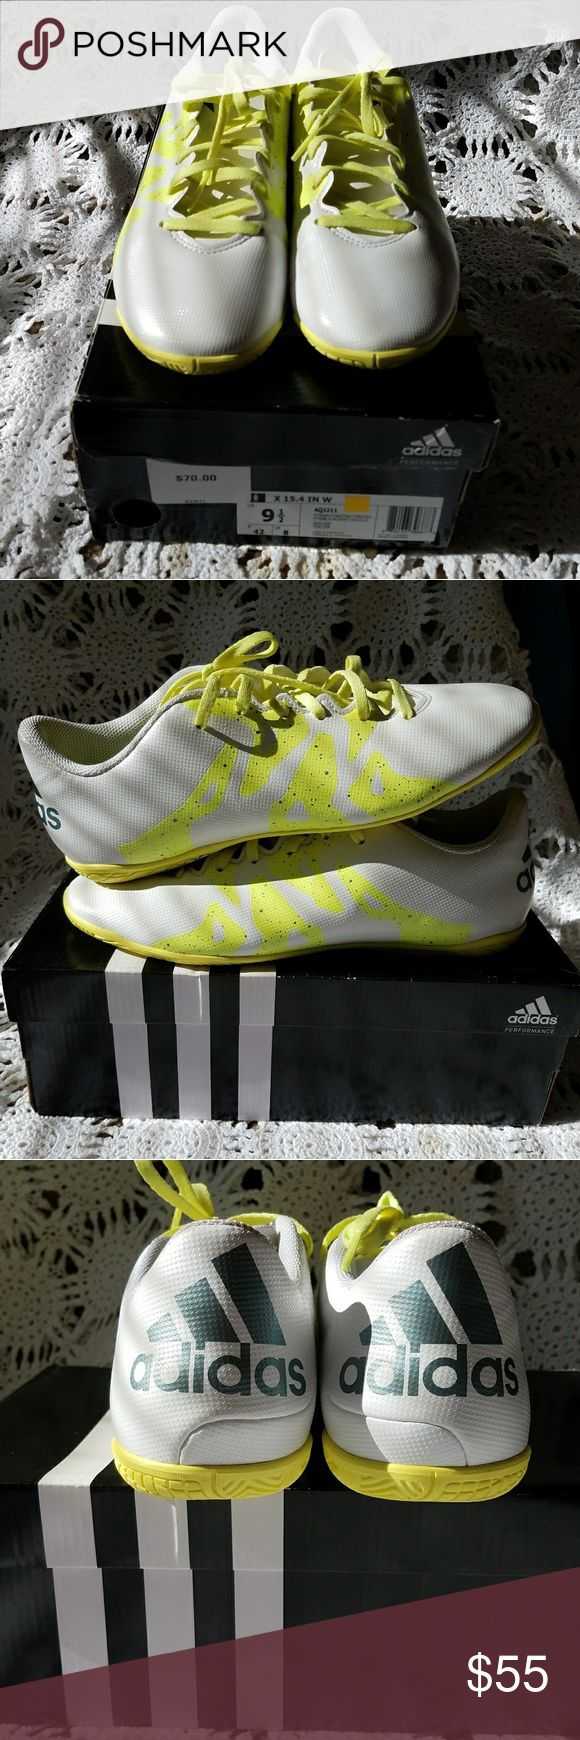 adidas indoor soccer shoes adidas indoor soccer shoes used once in perfect condition. adidas Shoes Athletic Shoes